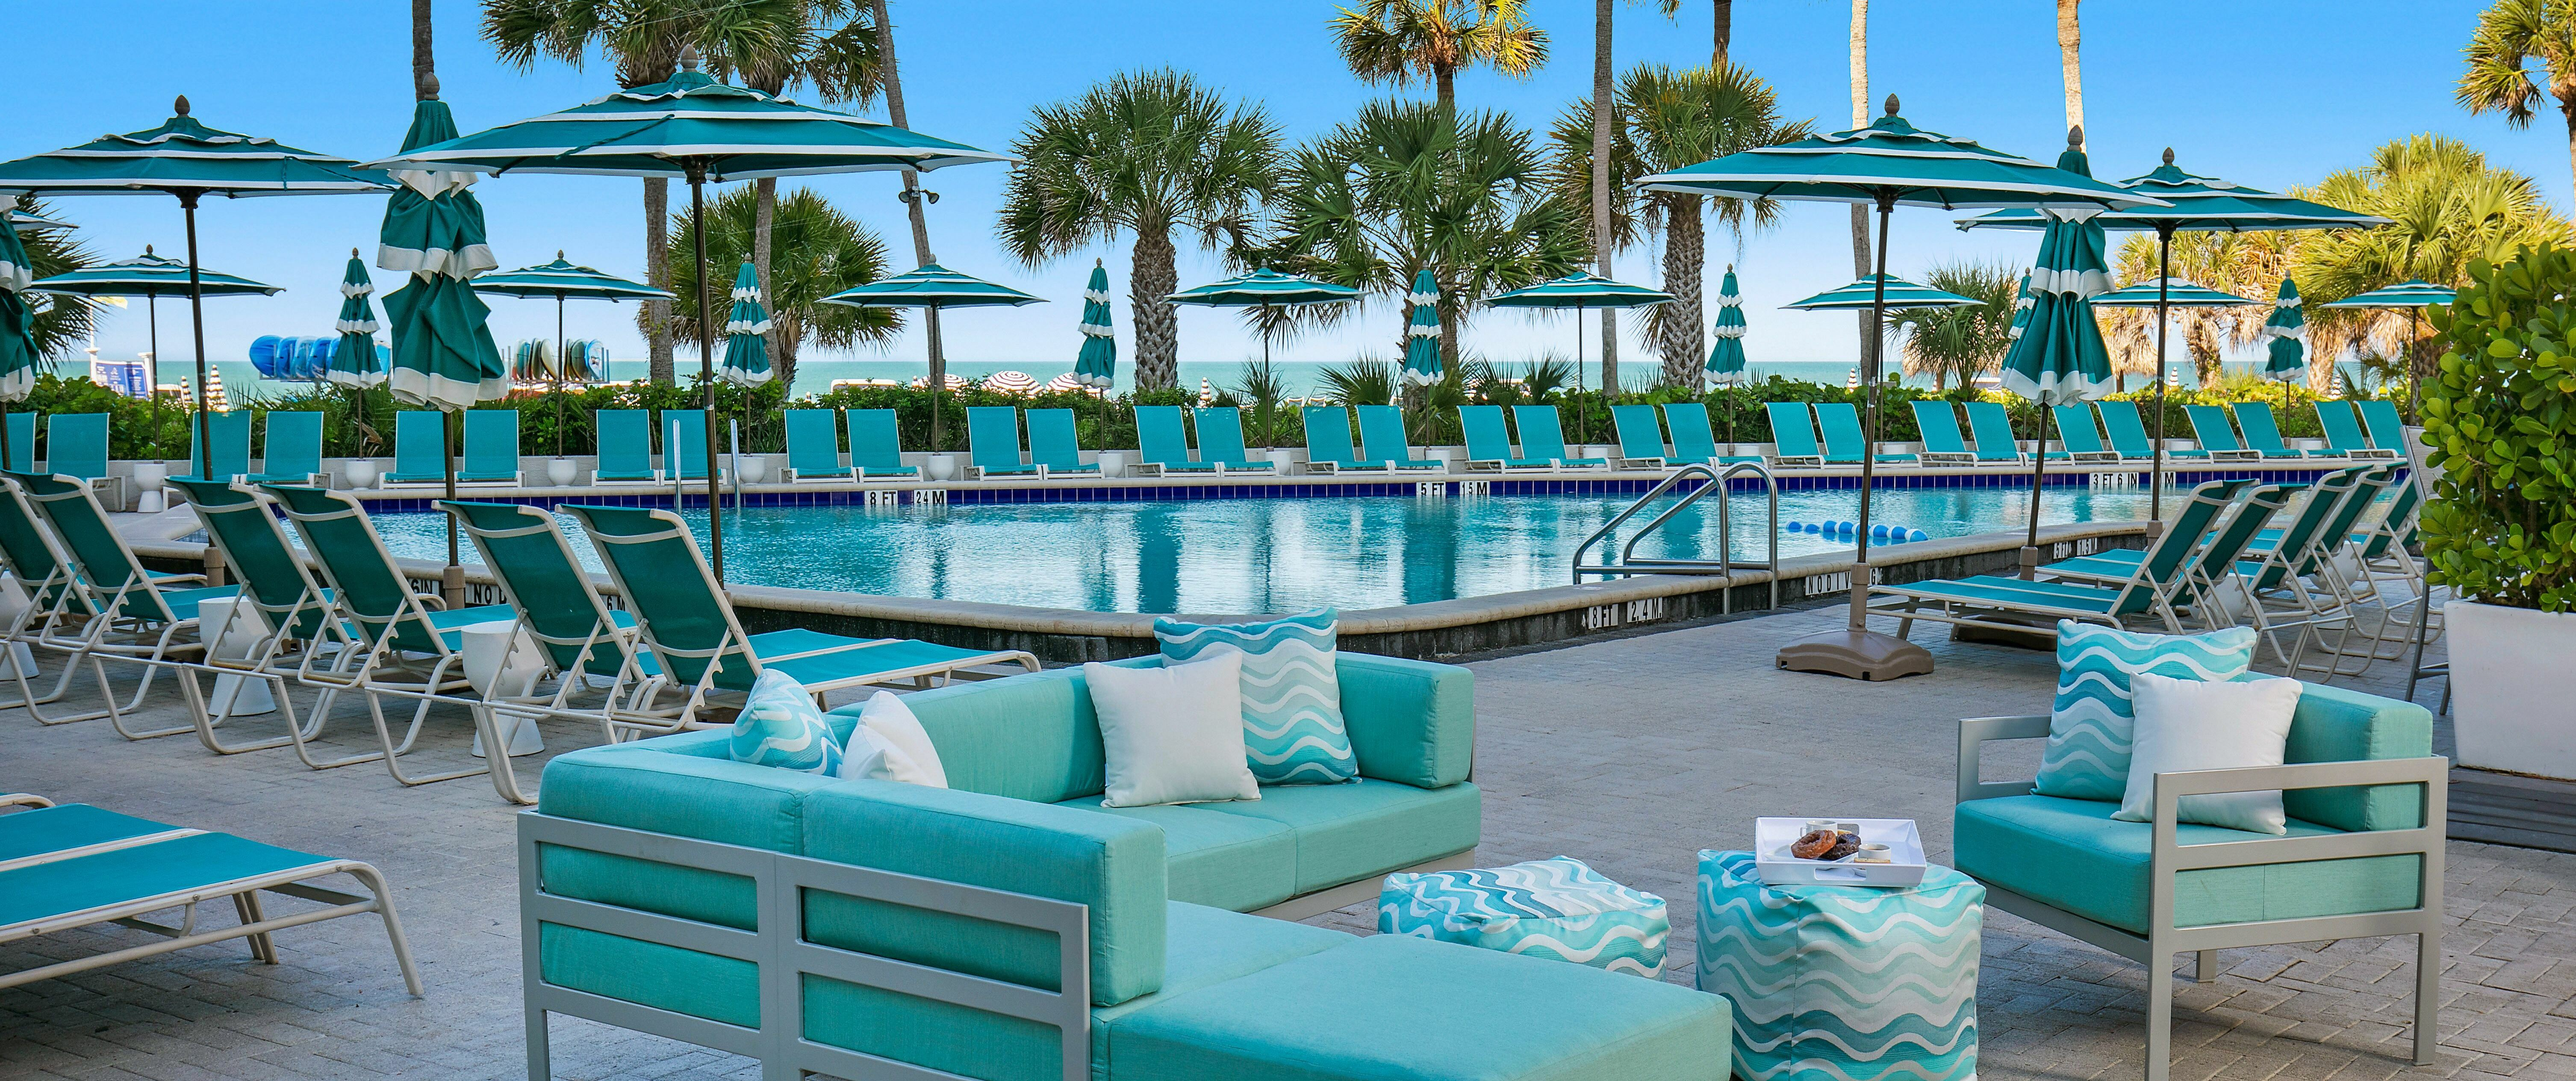 Commercial Outdoor Pool Patio Furniture Resort Furniture And Chairs